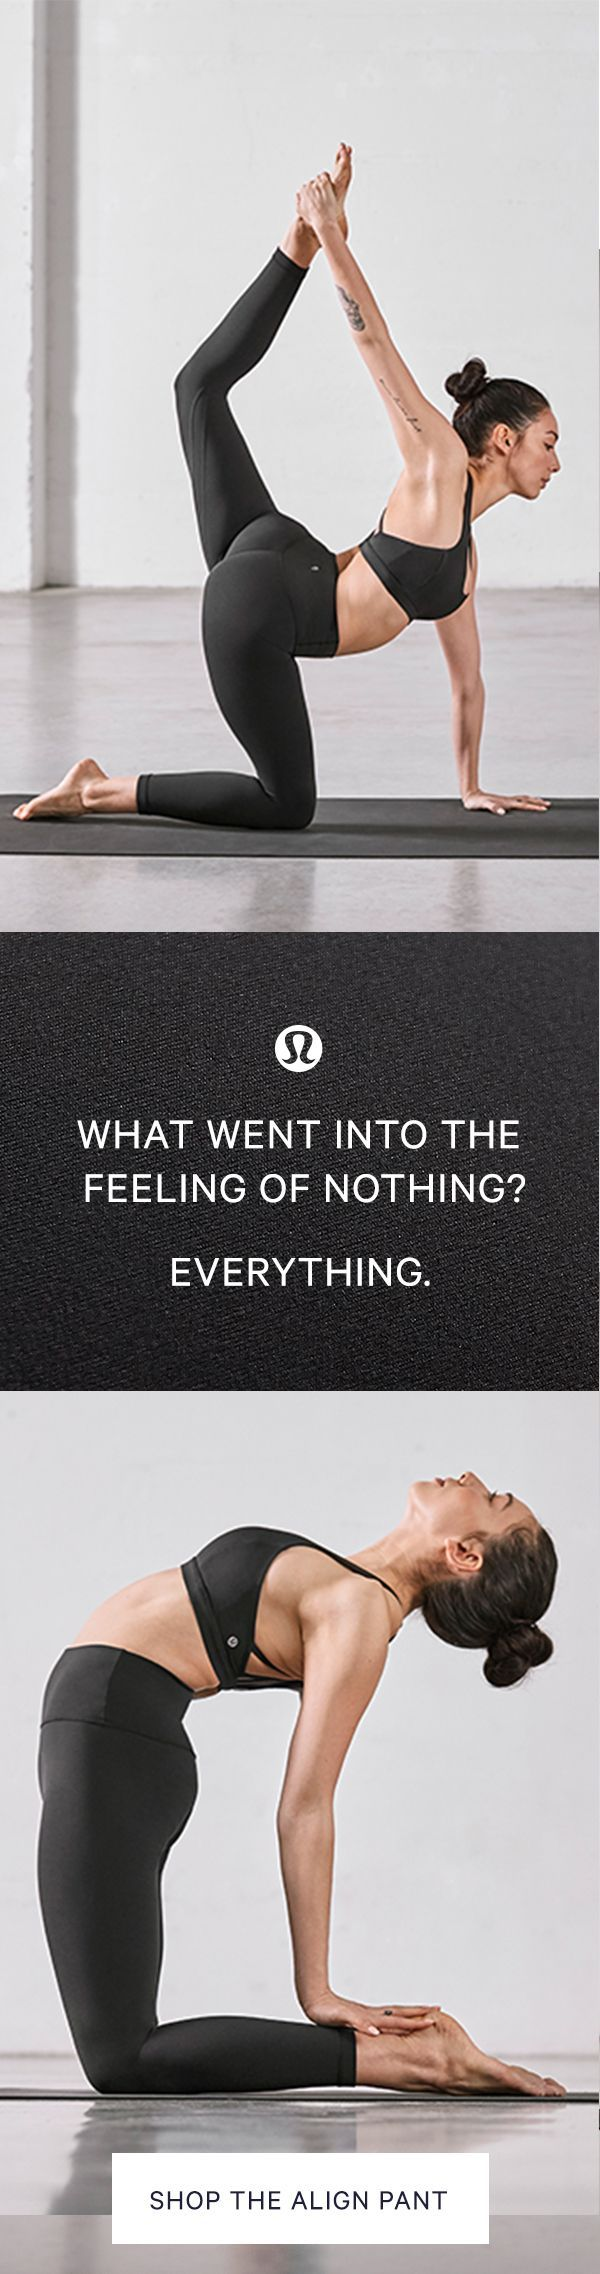 20 years of innovation led to nothing. Well, the feeling of nothing. These lightweight, high-rise pants are designed to minimize distractions and maximize comfort as you move. Made with our Naked Sensation Nulu™ fabric that's buttery soft, this revolution http://feedproxy.google.com/fashiongo/rfpD